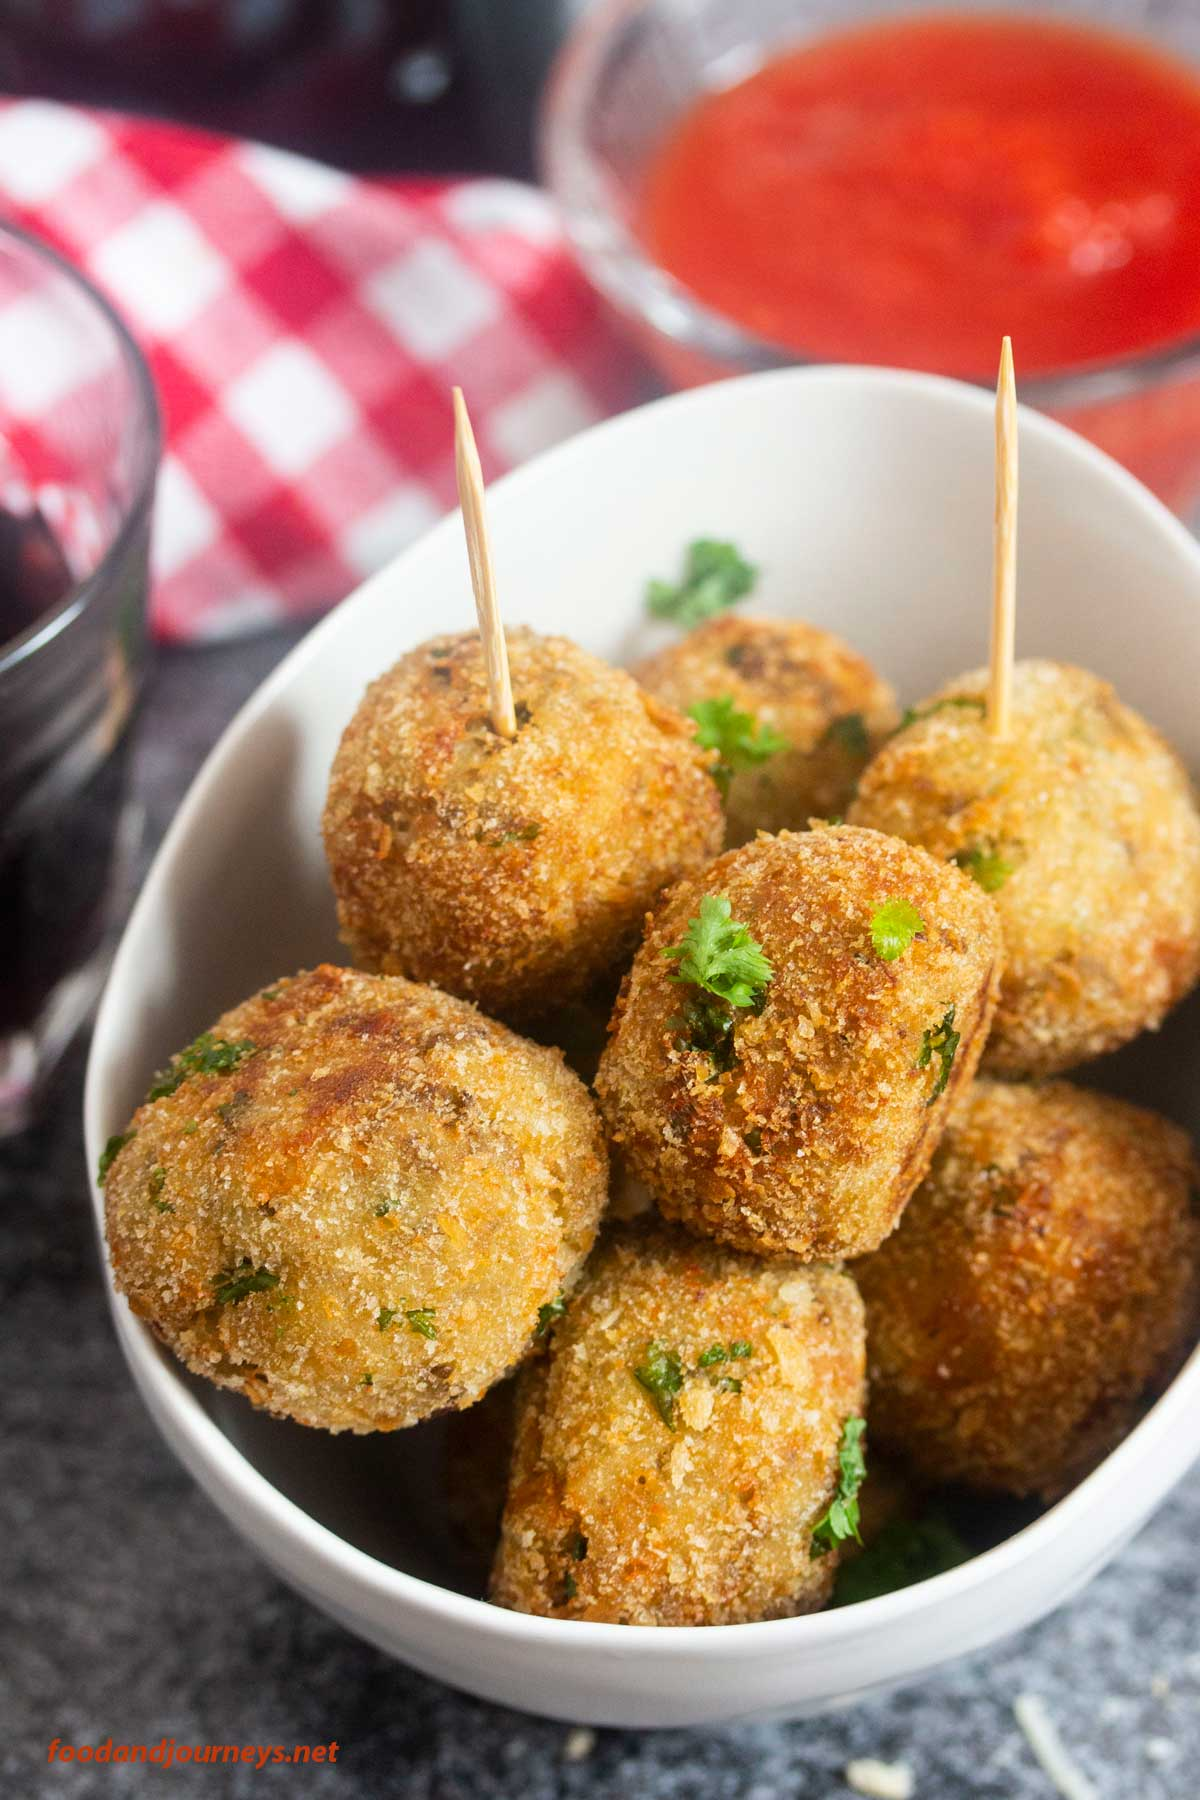 Polpette di Melanzane served in a bowl, with toothpicks for picking